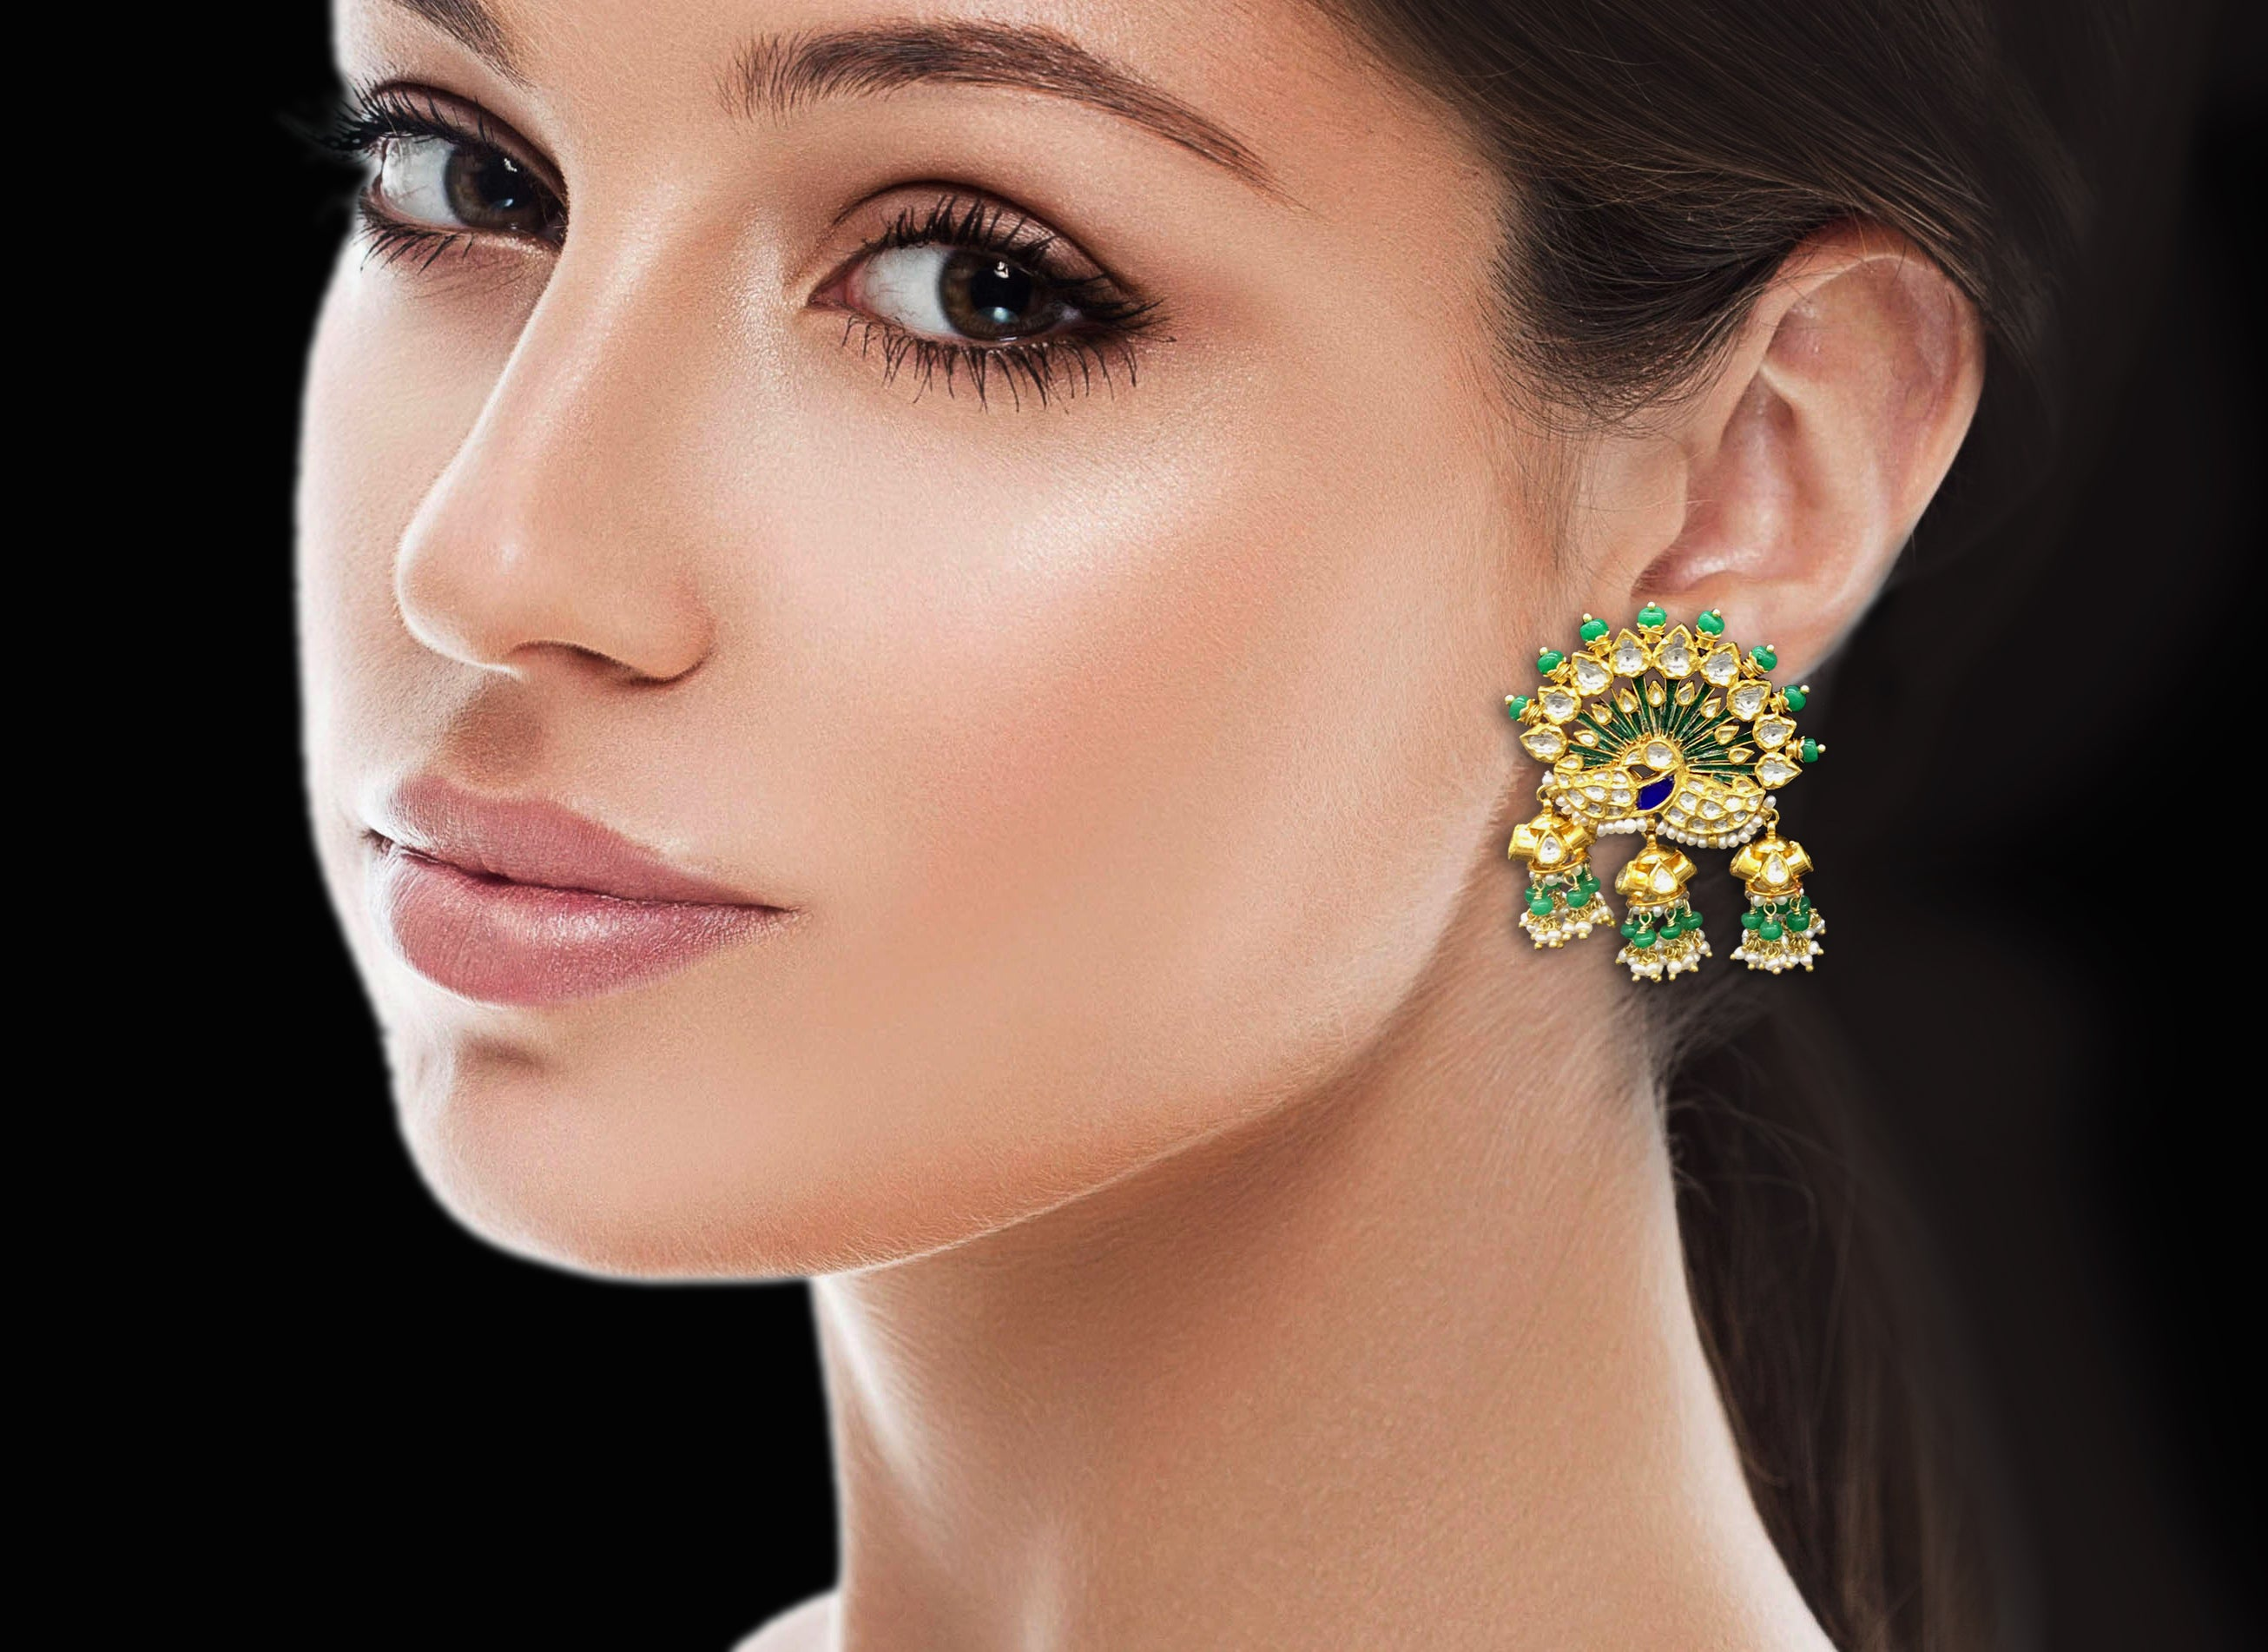 18k Gold and Diamond Polki Peacock Karanphool Earring Pair with small jhumkis strung in emerald-grade green beryls - G. K. Ratnam